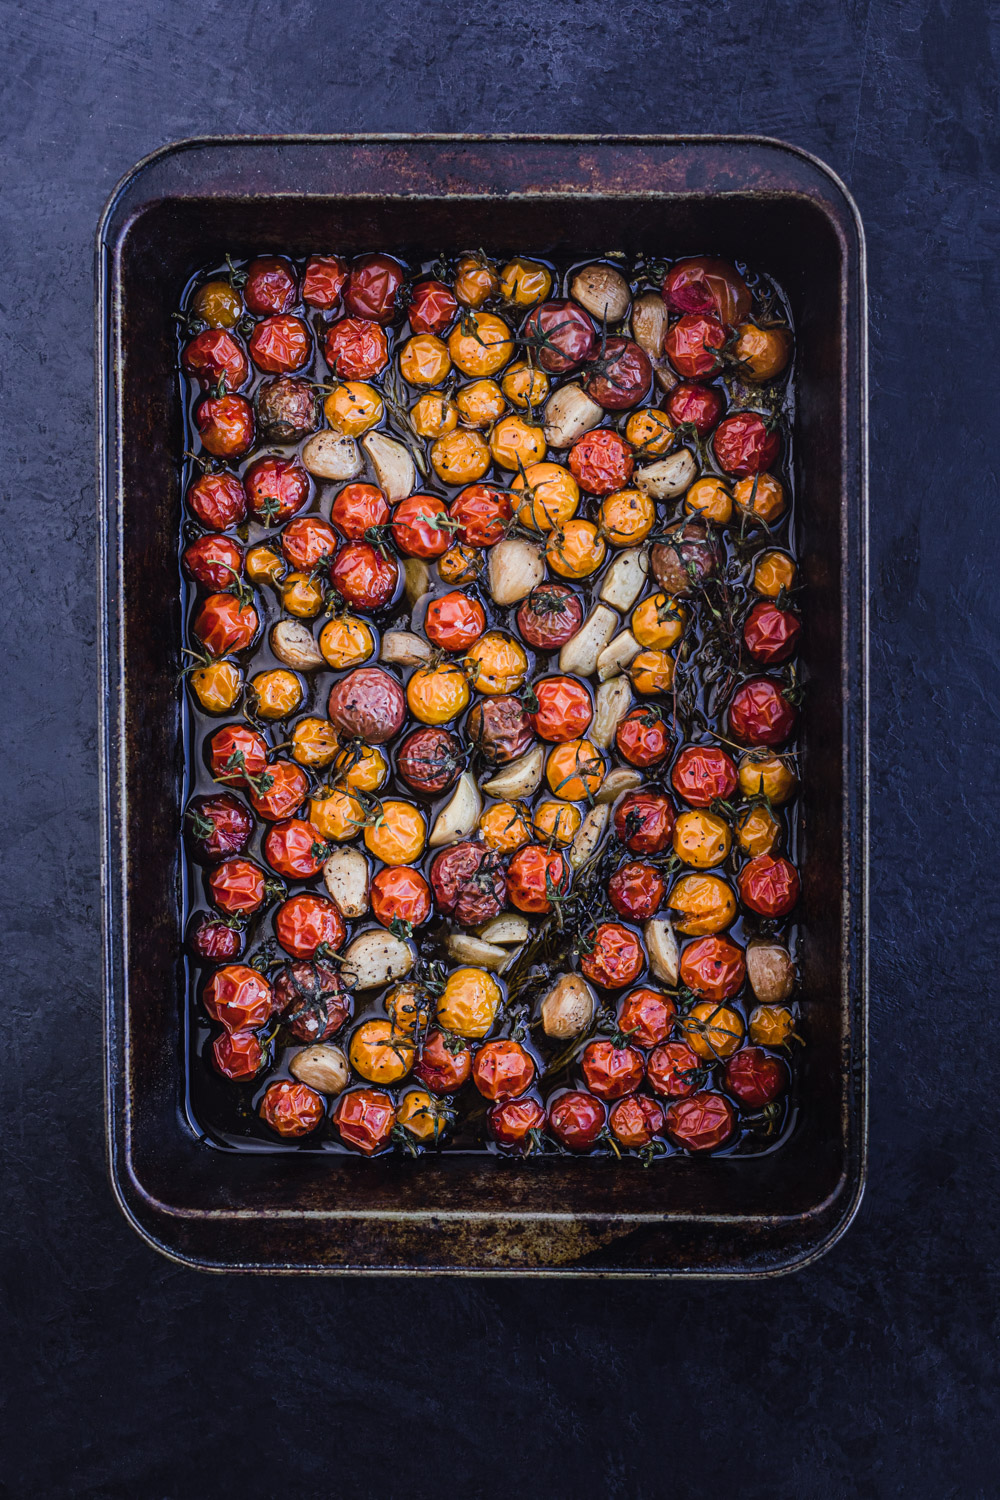 Cherry tomato confit, freshly out of the oven, on a tray, overhead shot on a black background.